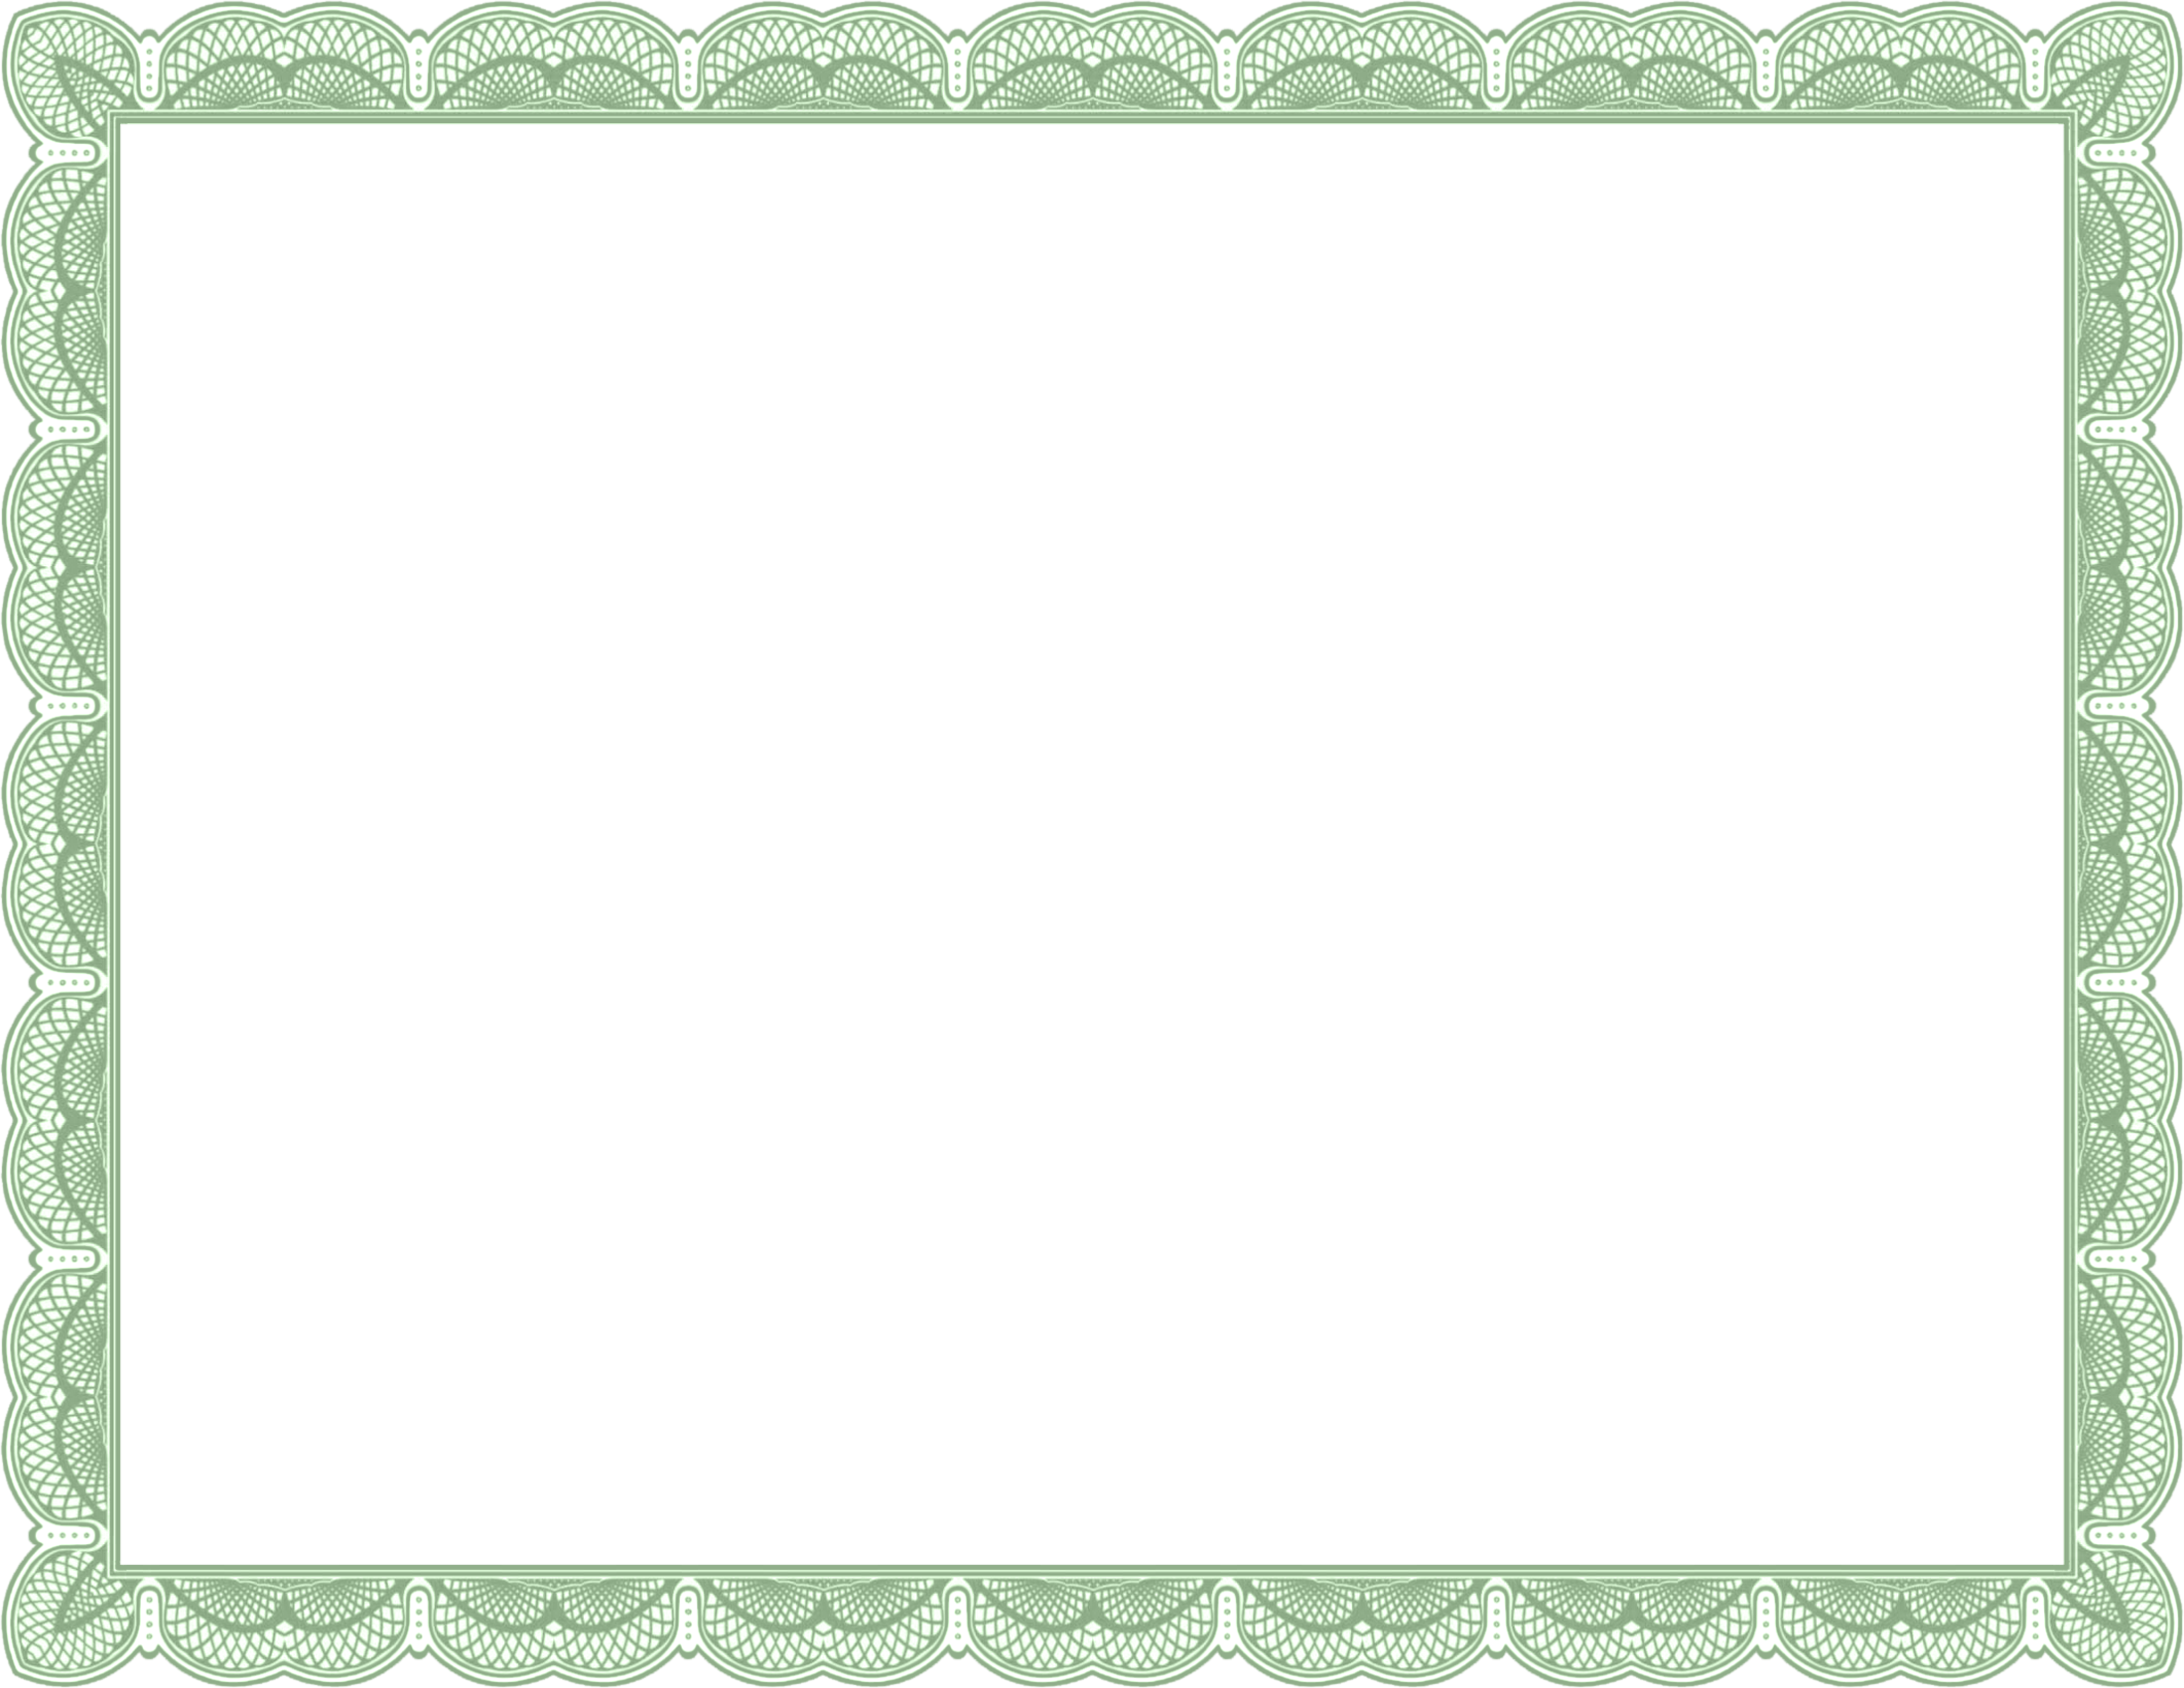 Gift certificate border png. Outstanding effort best templates